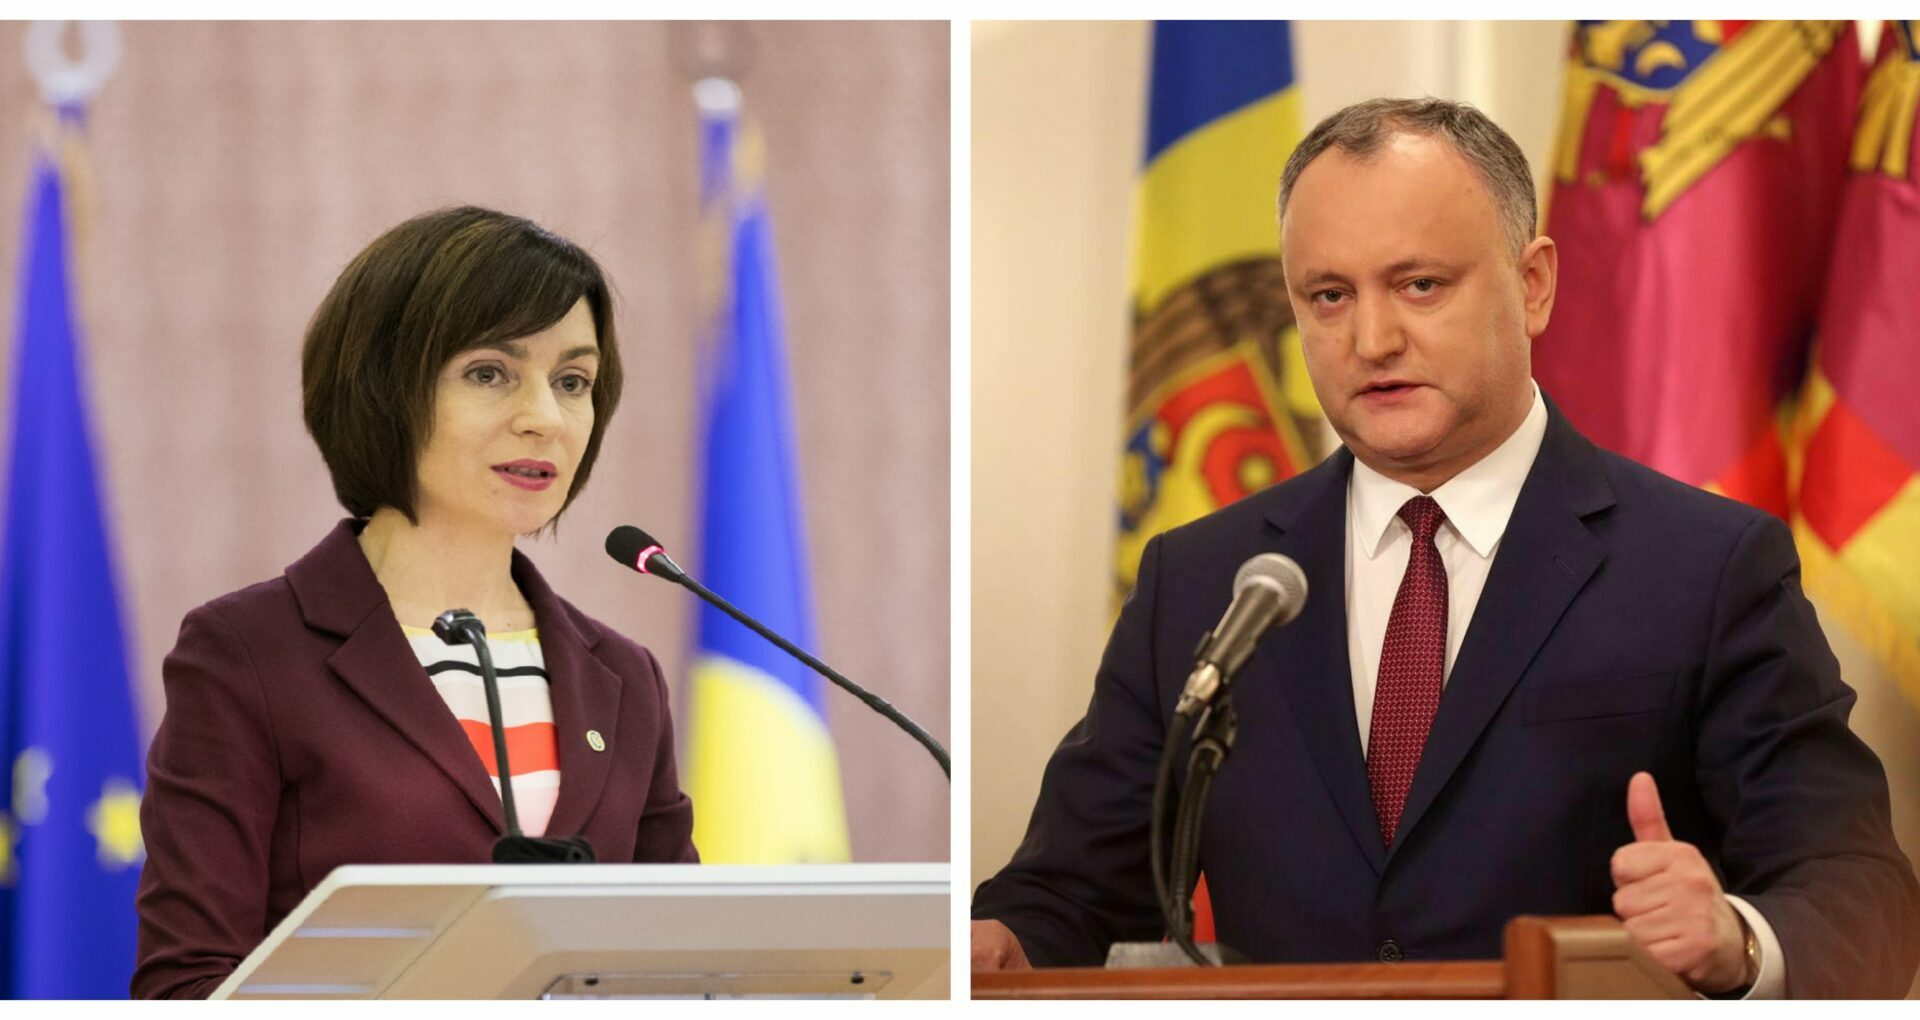 IRI Poll: The President of Moldova Will Be Elected in the Second Round